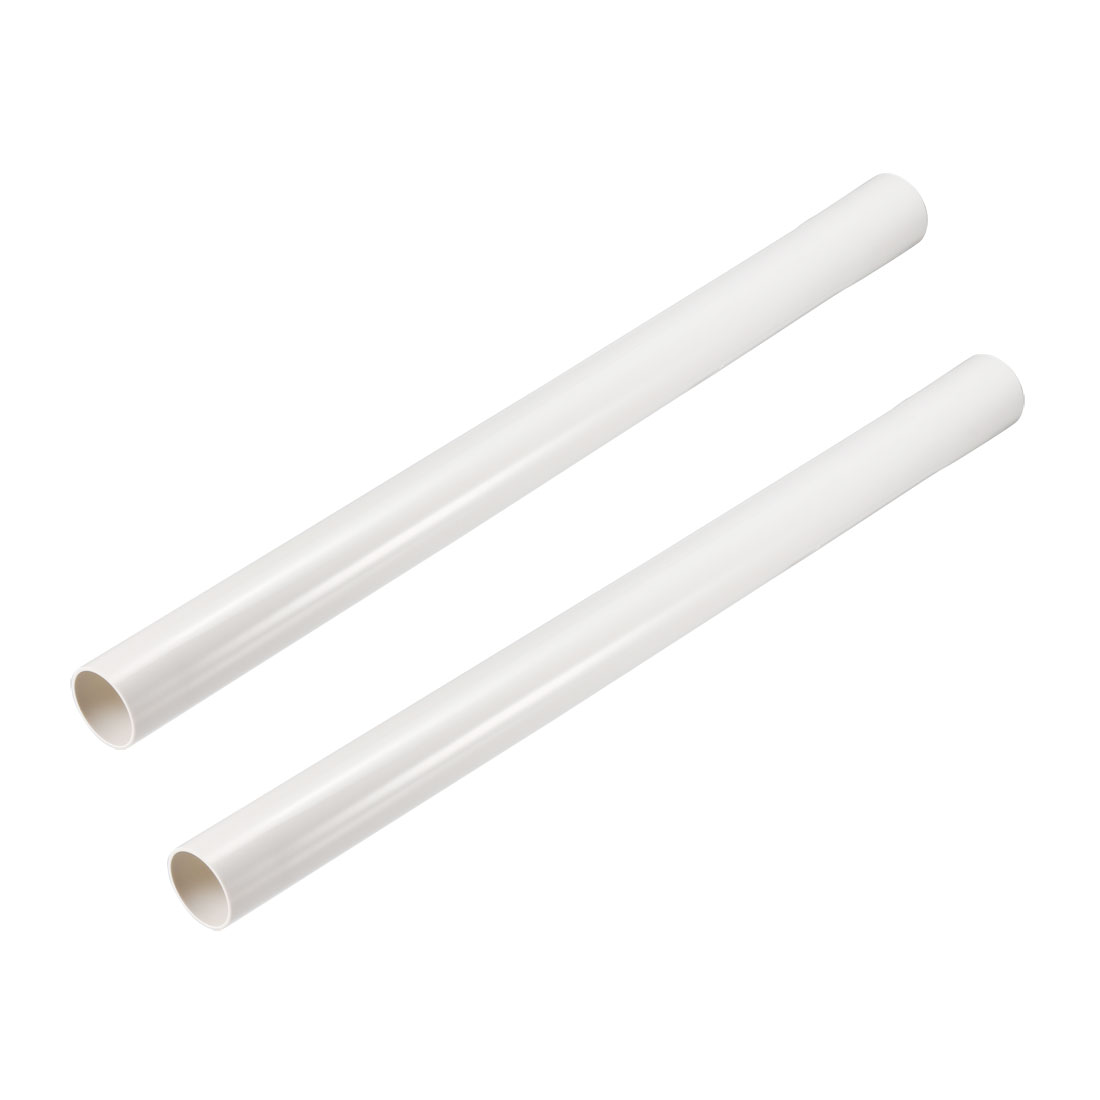 Extension Wand 32mm Plastic Tube 44cm Length Vacuum Cleaner Accessory White 2Pcs